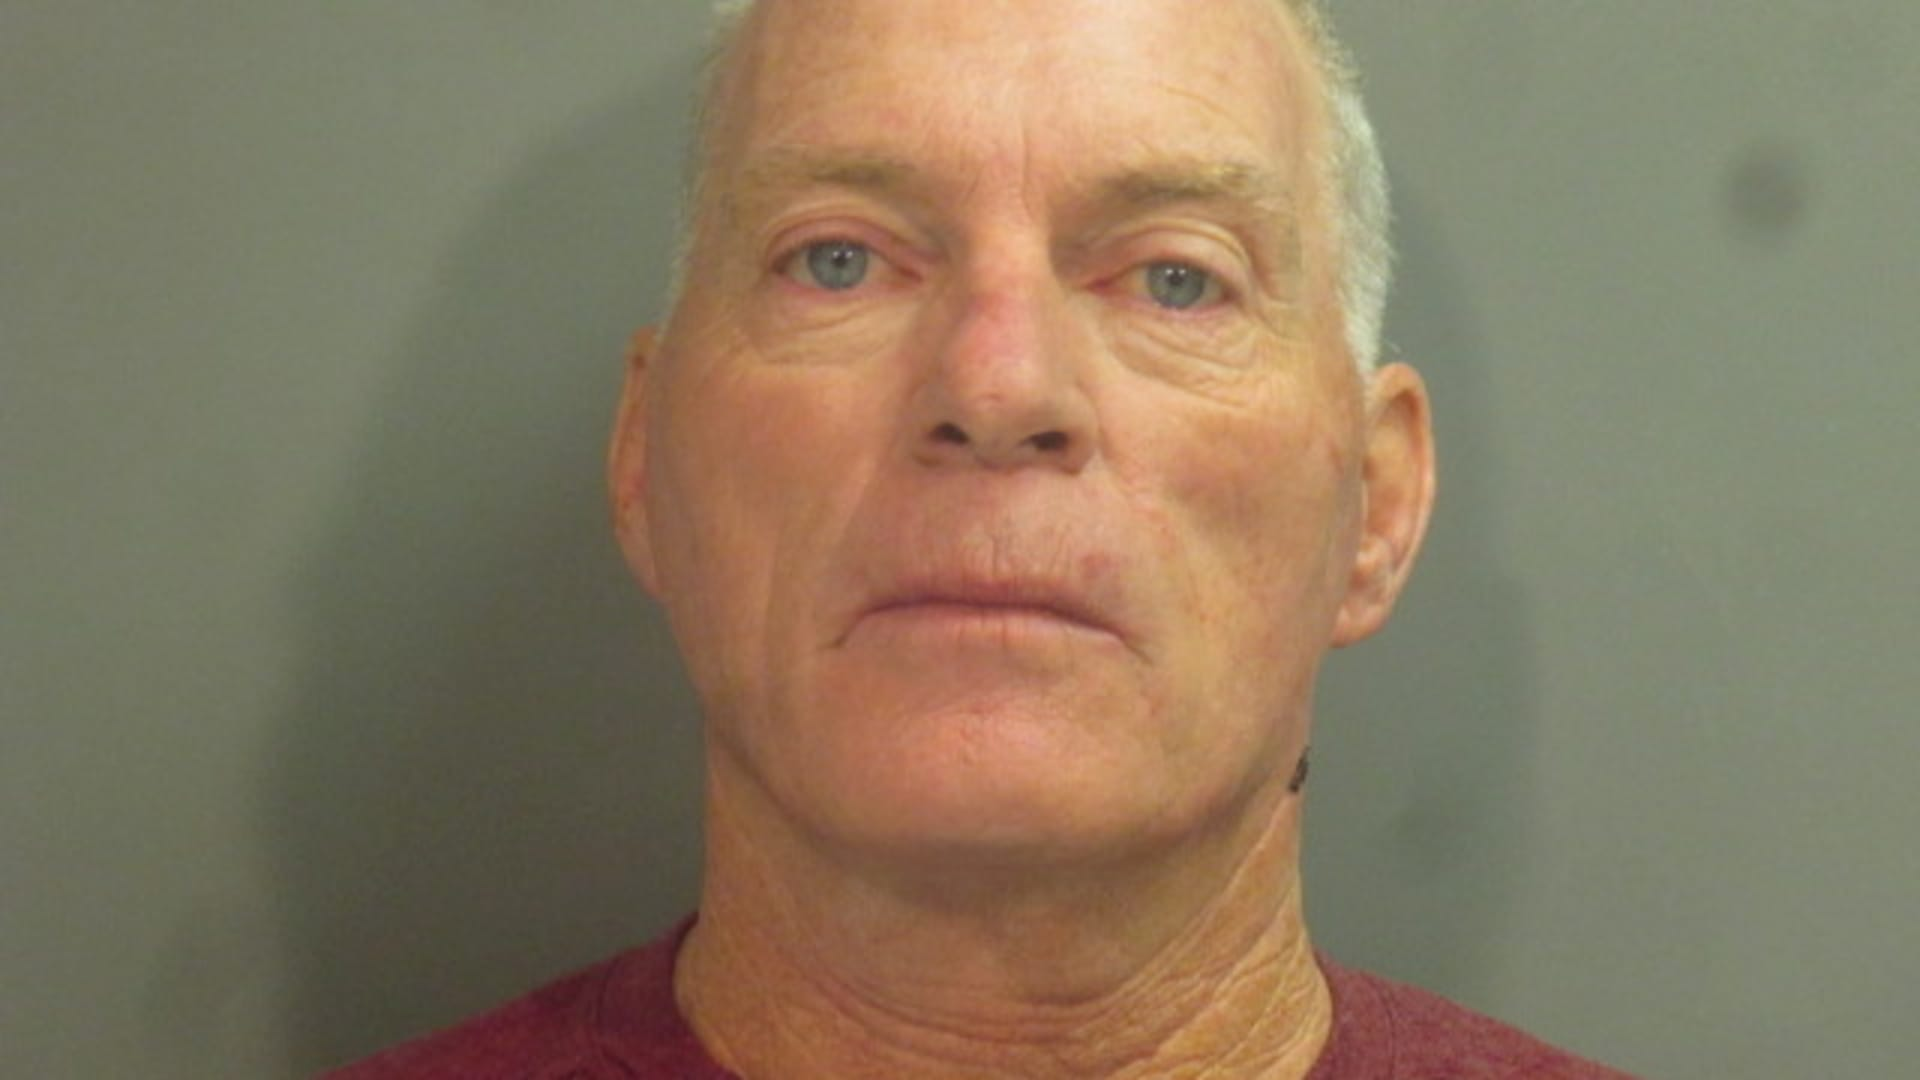 Police mugshot of Richard Barnett, 60, of Gravette, Arkansas who was arrested in Little Rock, Arkansas, January 8, 2021, on multiple criminal charges for his role in storming the Capitol building in Washington earlier in the week.